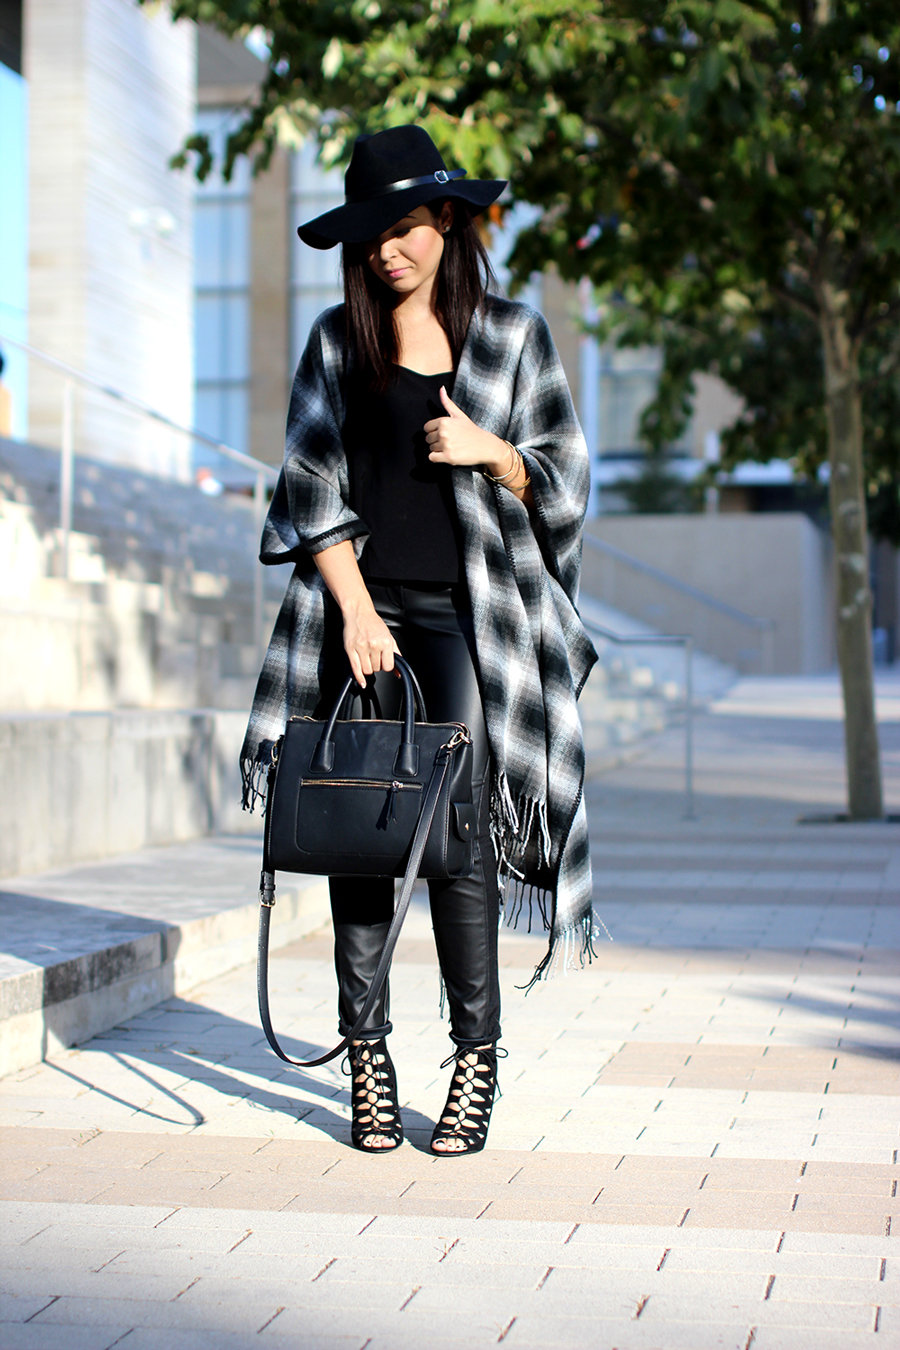 FIXIN-TO-THRILL-OVERSIZED-SCARF-CHECK-LEATHER-BLACK-NOVEMBER-ATX-AUSTIN-STYLE-BLOG-FW15-TRENDY-CHIC-GLAM-TEXAS